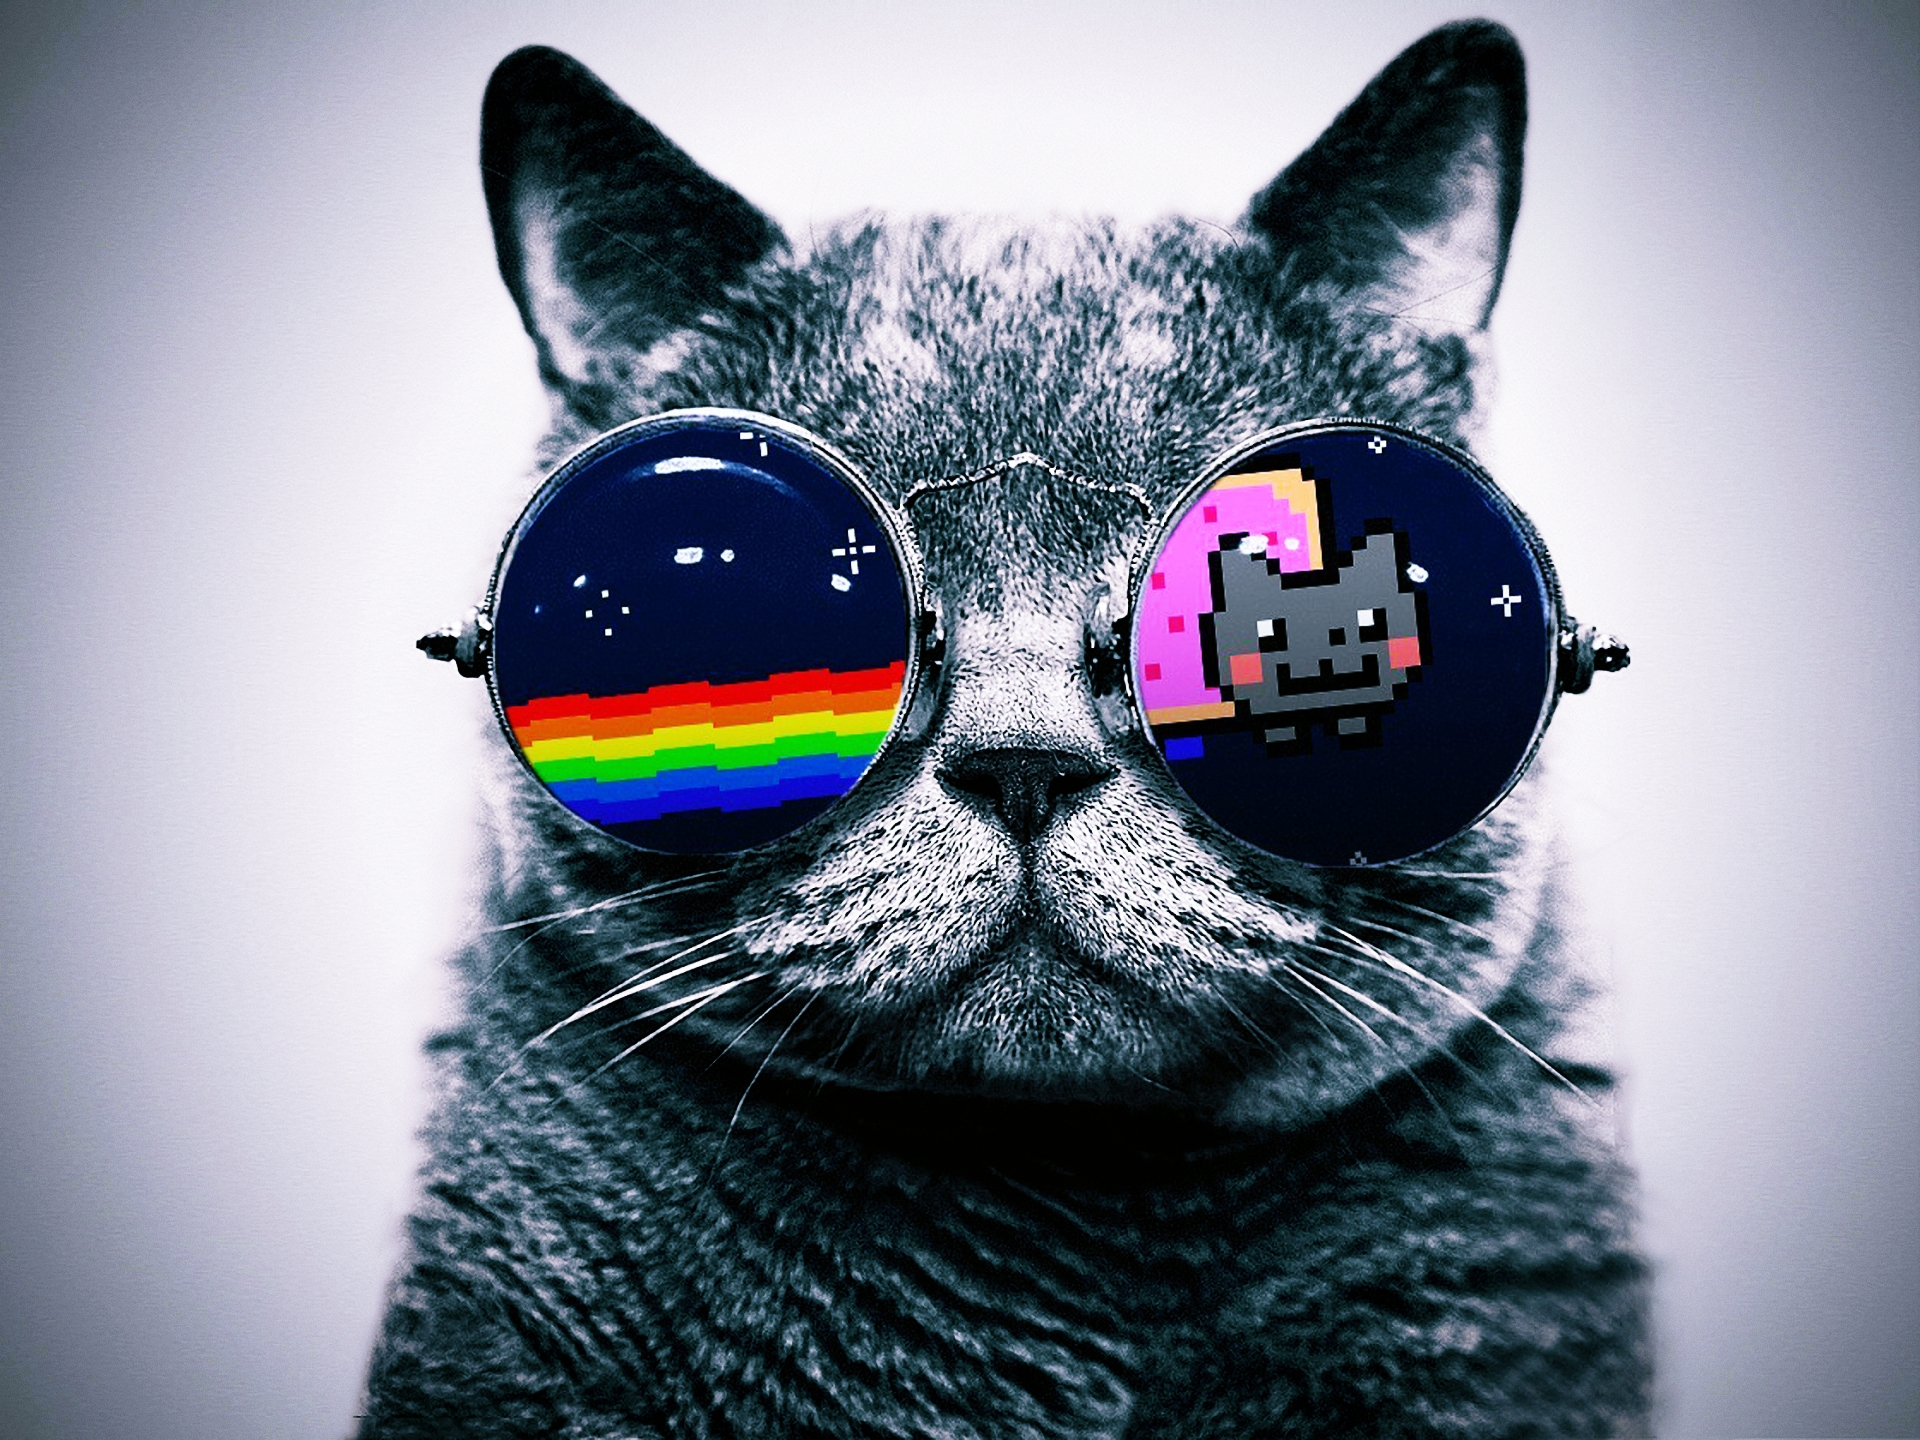 Animals   Cats Cat with glasses Hello Kitty 043898 jpg 1920x1440